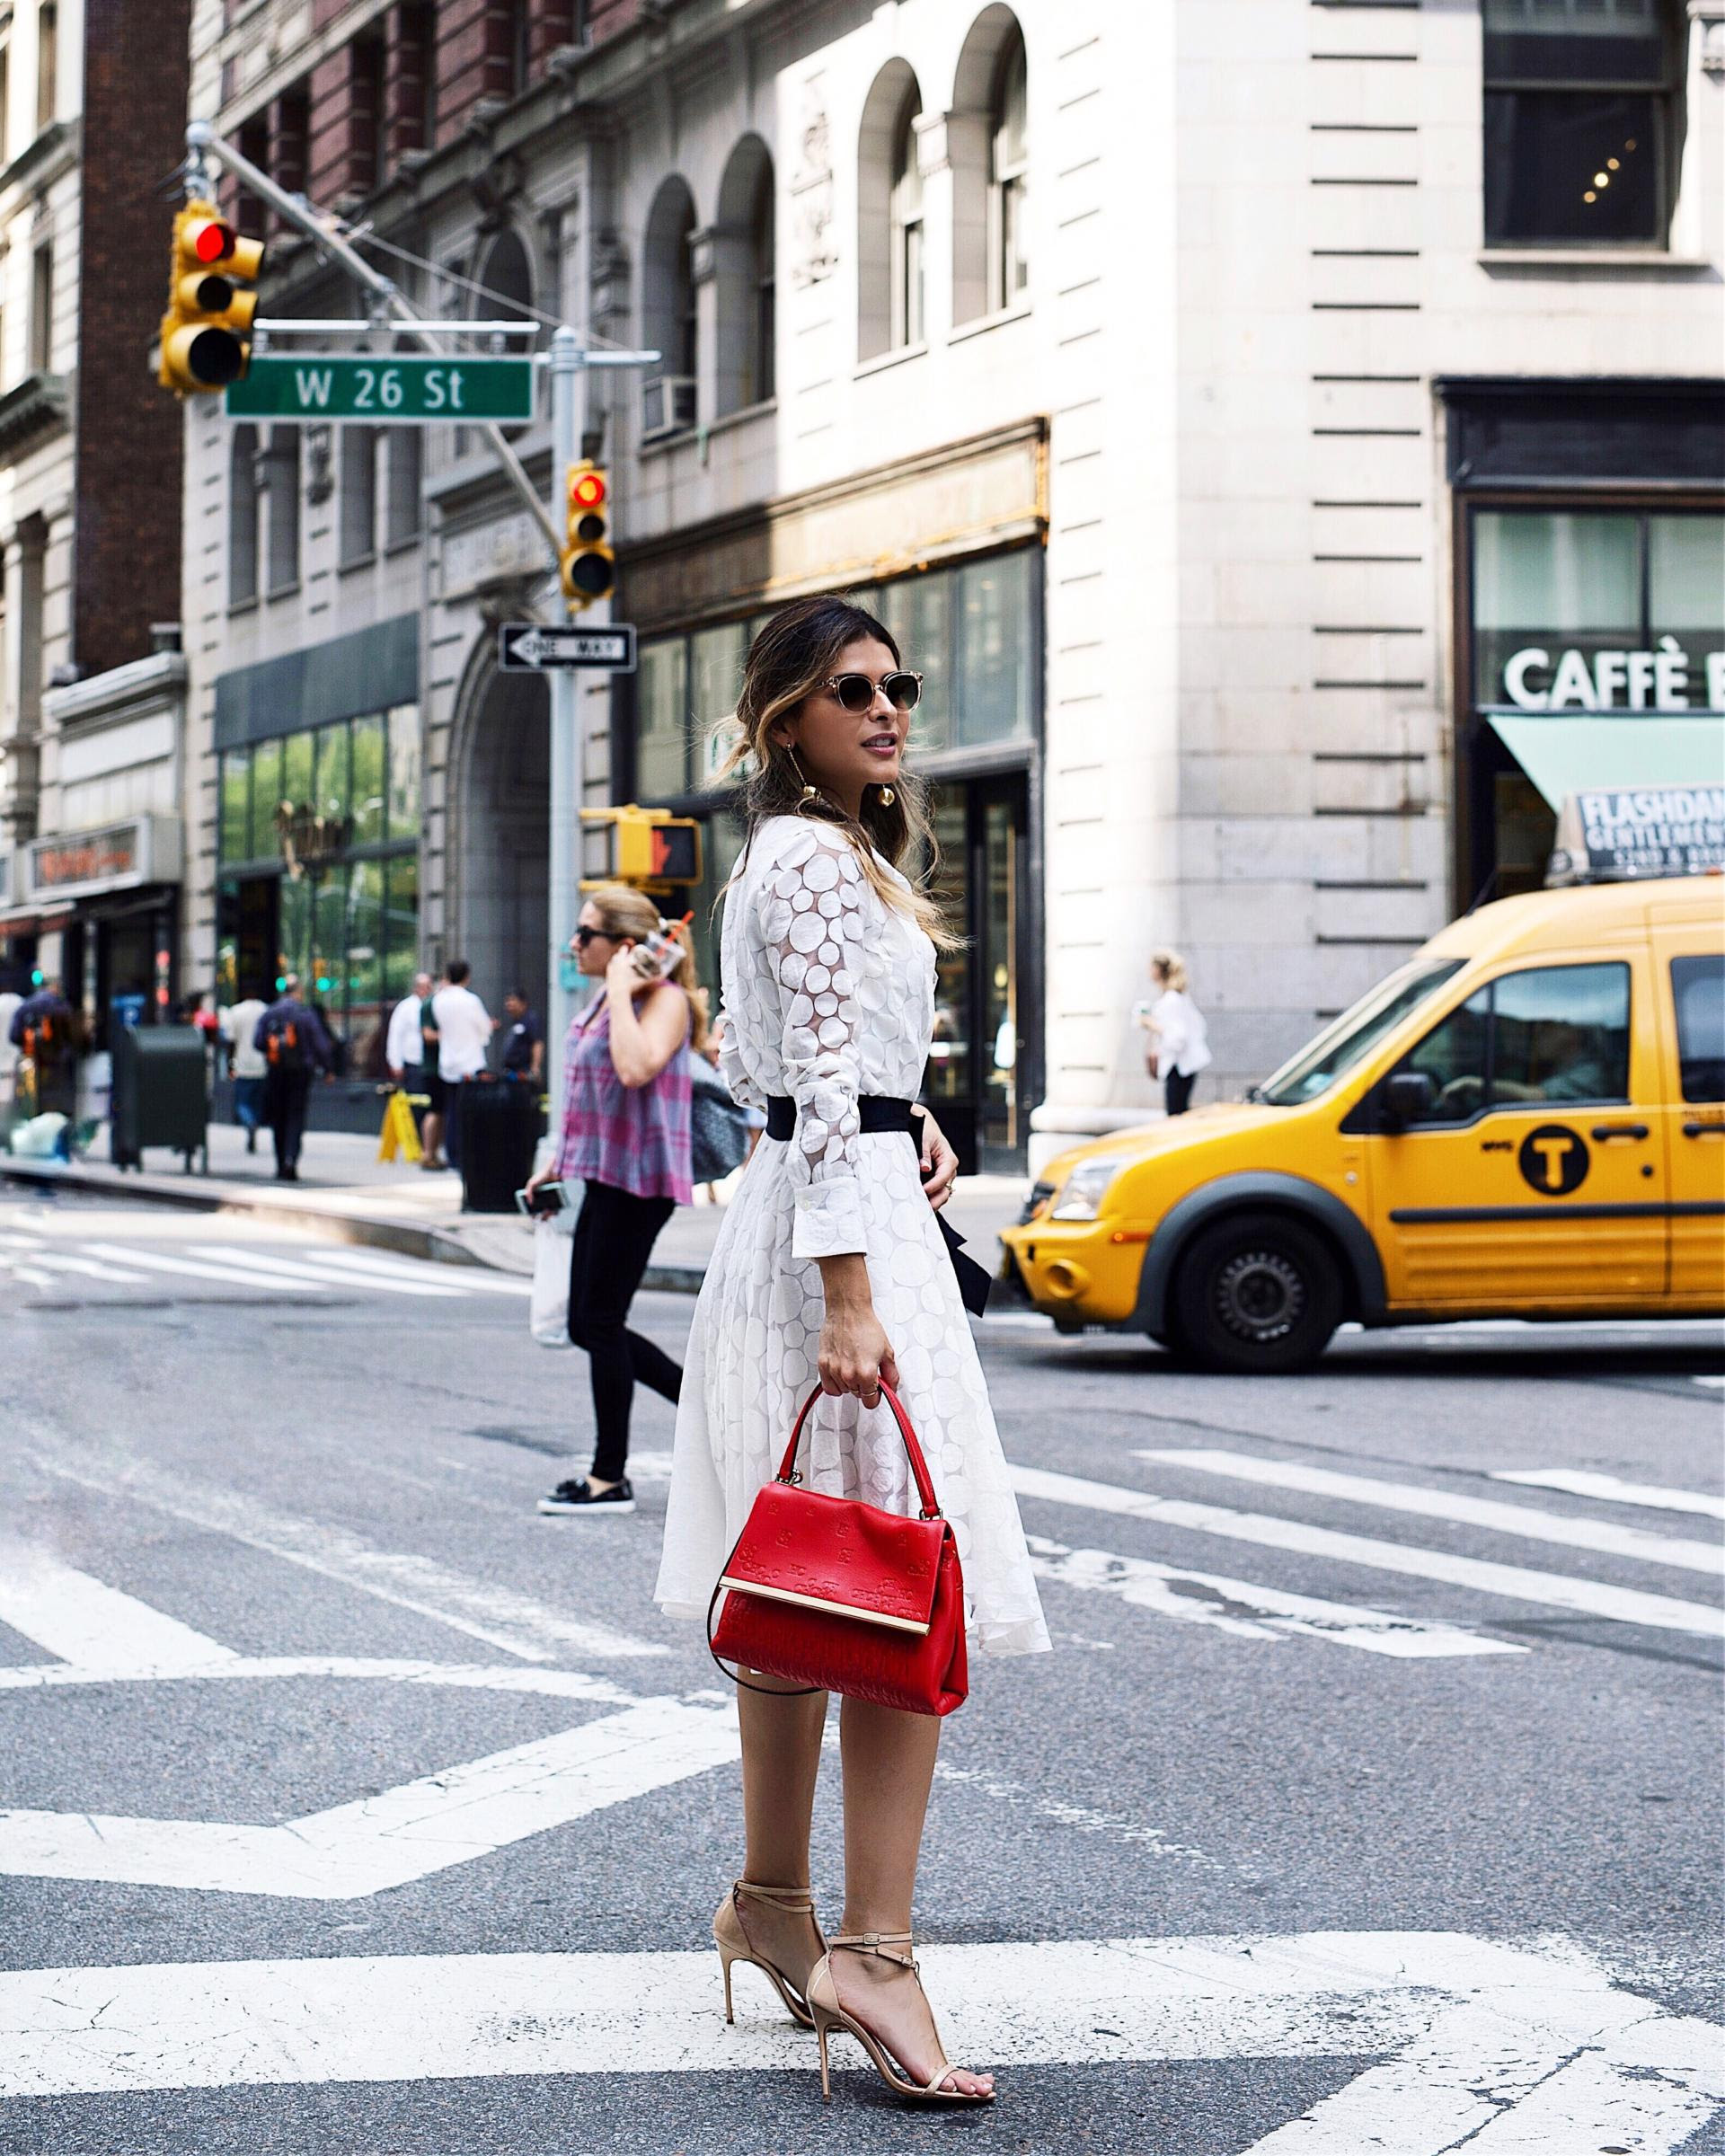 48 Hours in NYC with Carolina Herrera // The Girl From Panama